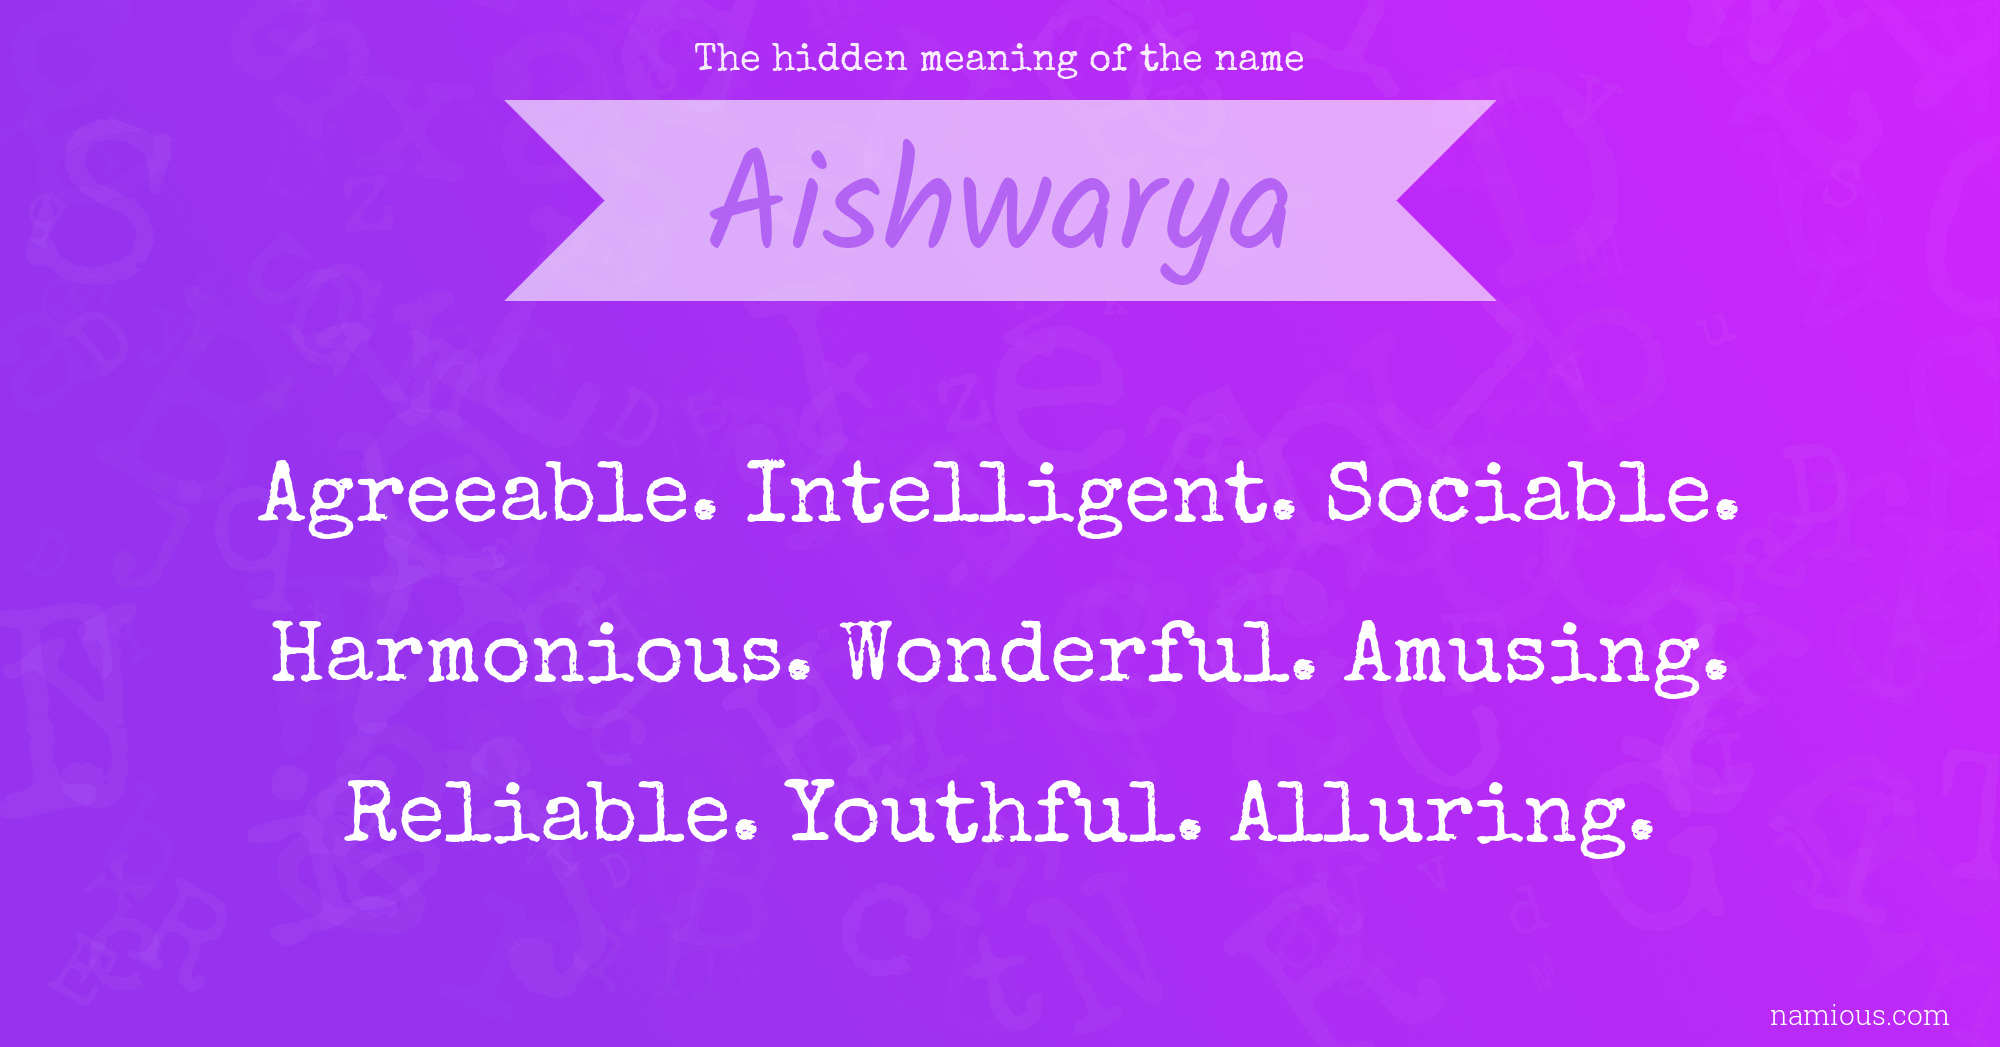 The Hidden Meaning Of The Name Aishwarya Namious Her name is aishwarya from the birth only. the hidden meaning of the name